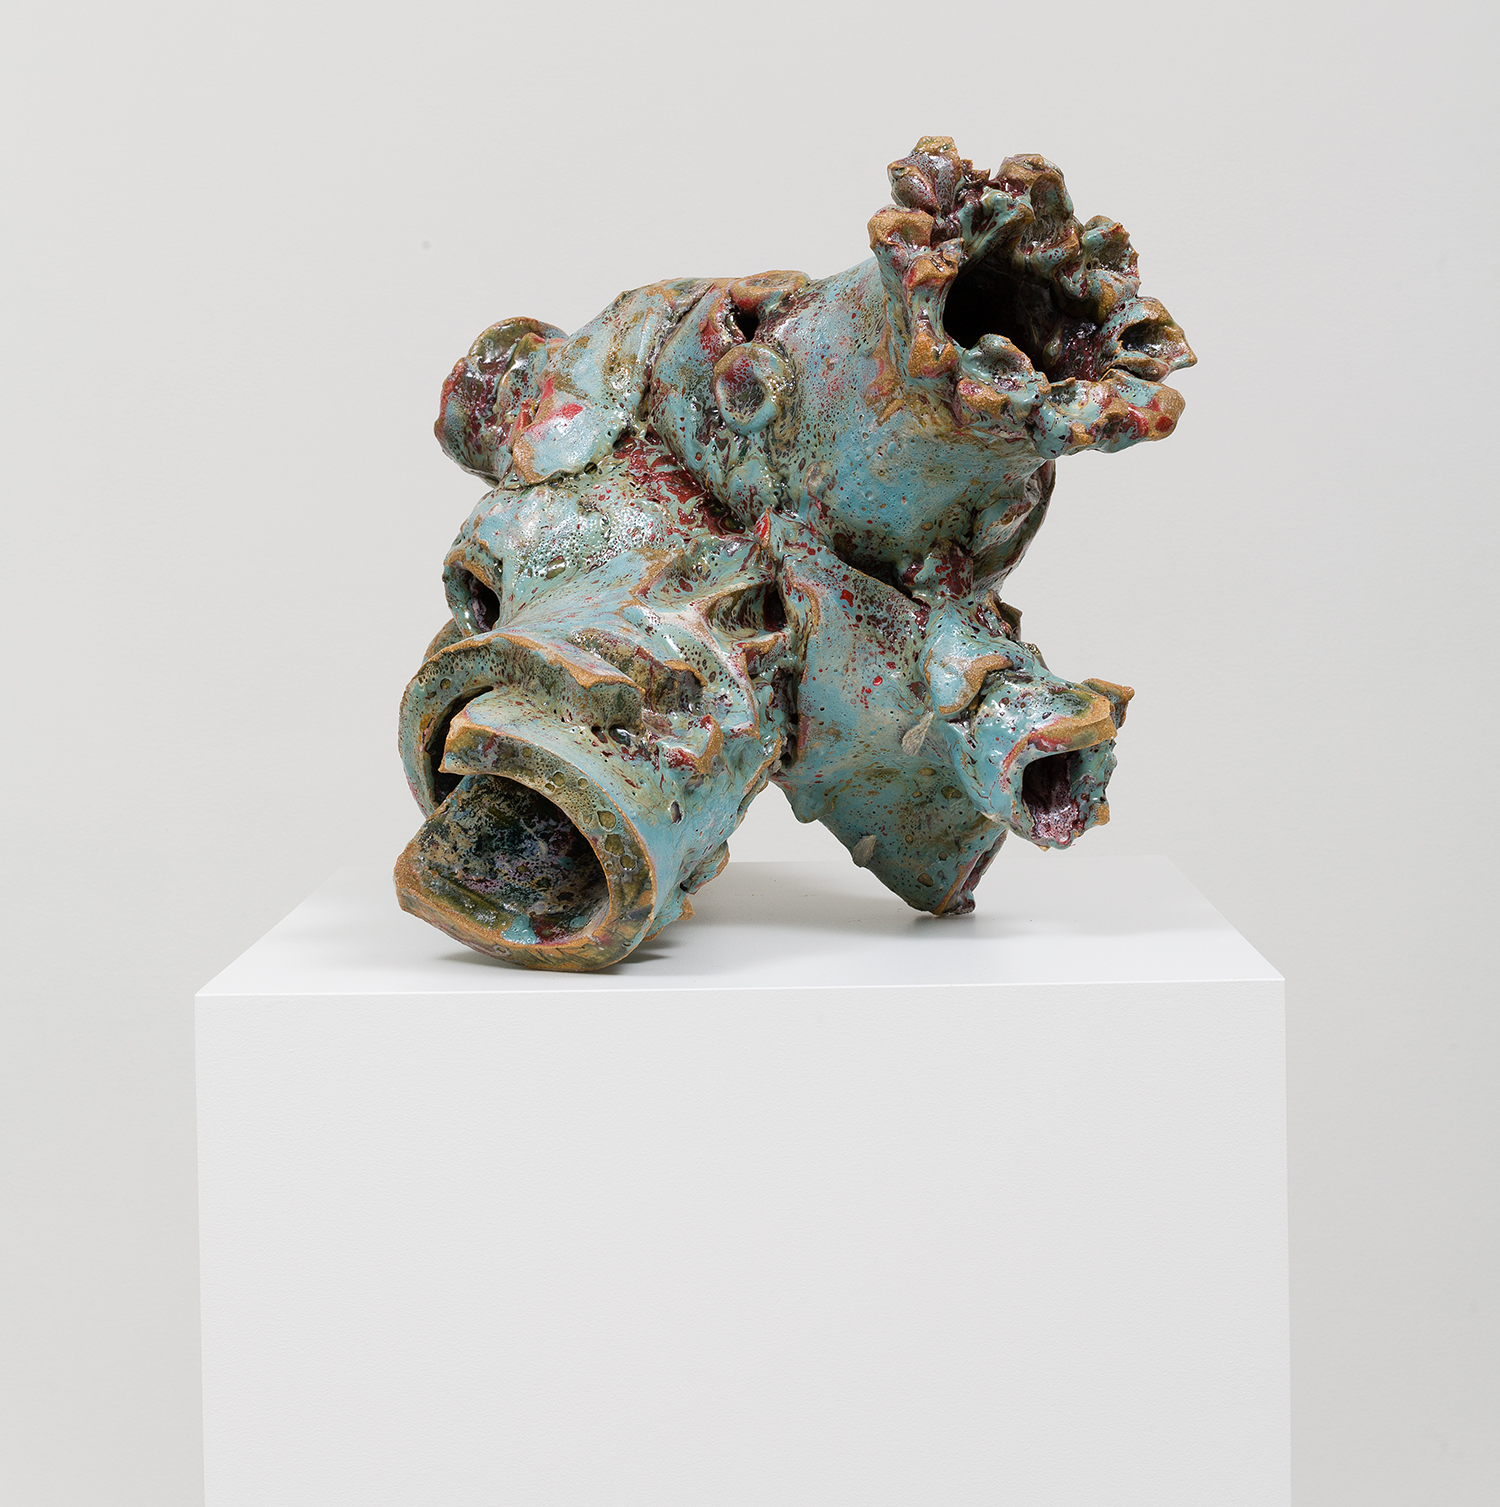 Christopher Miles  Untitled (Nugget #4)    2013 Glazed stoneware 14.5 x 20 x 19 Inches  Courtesy of the Artist